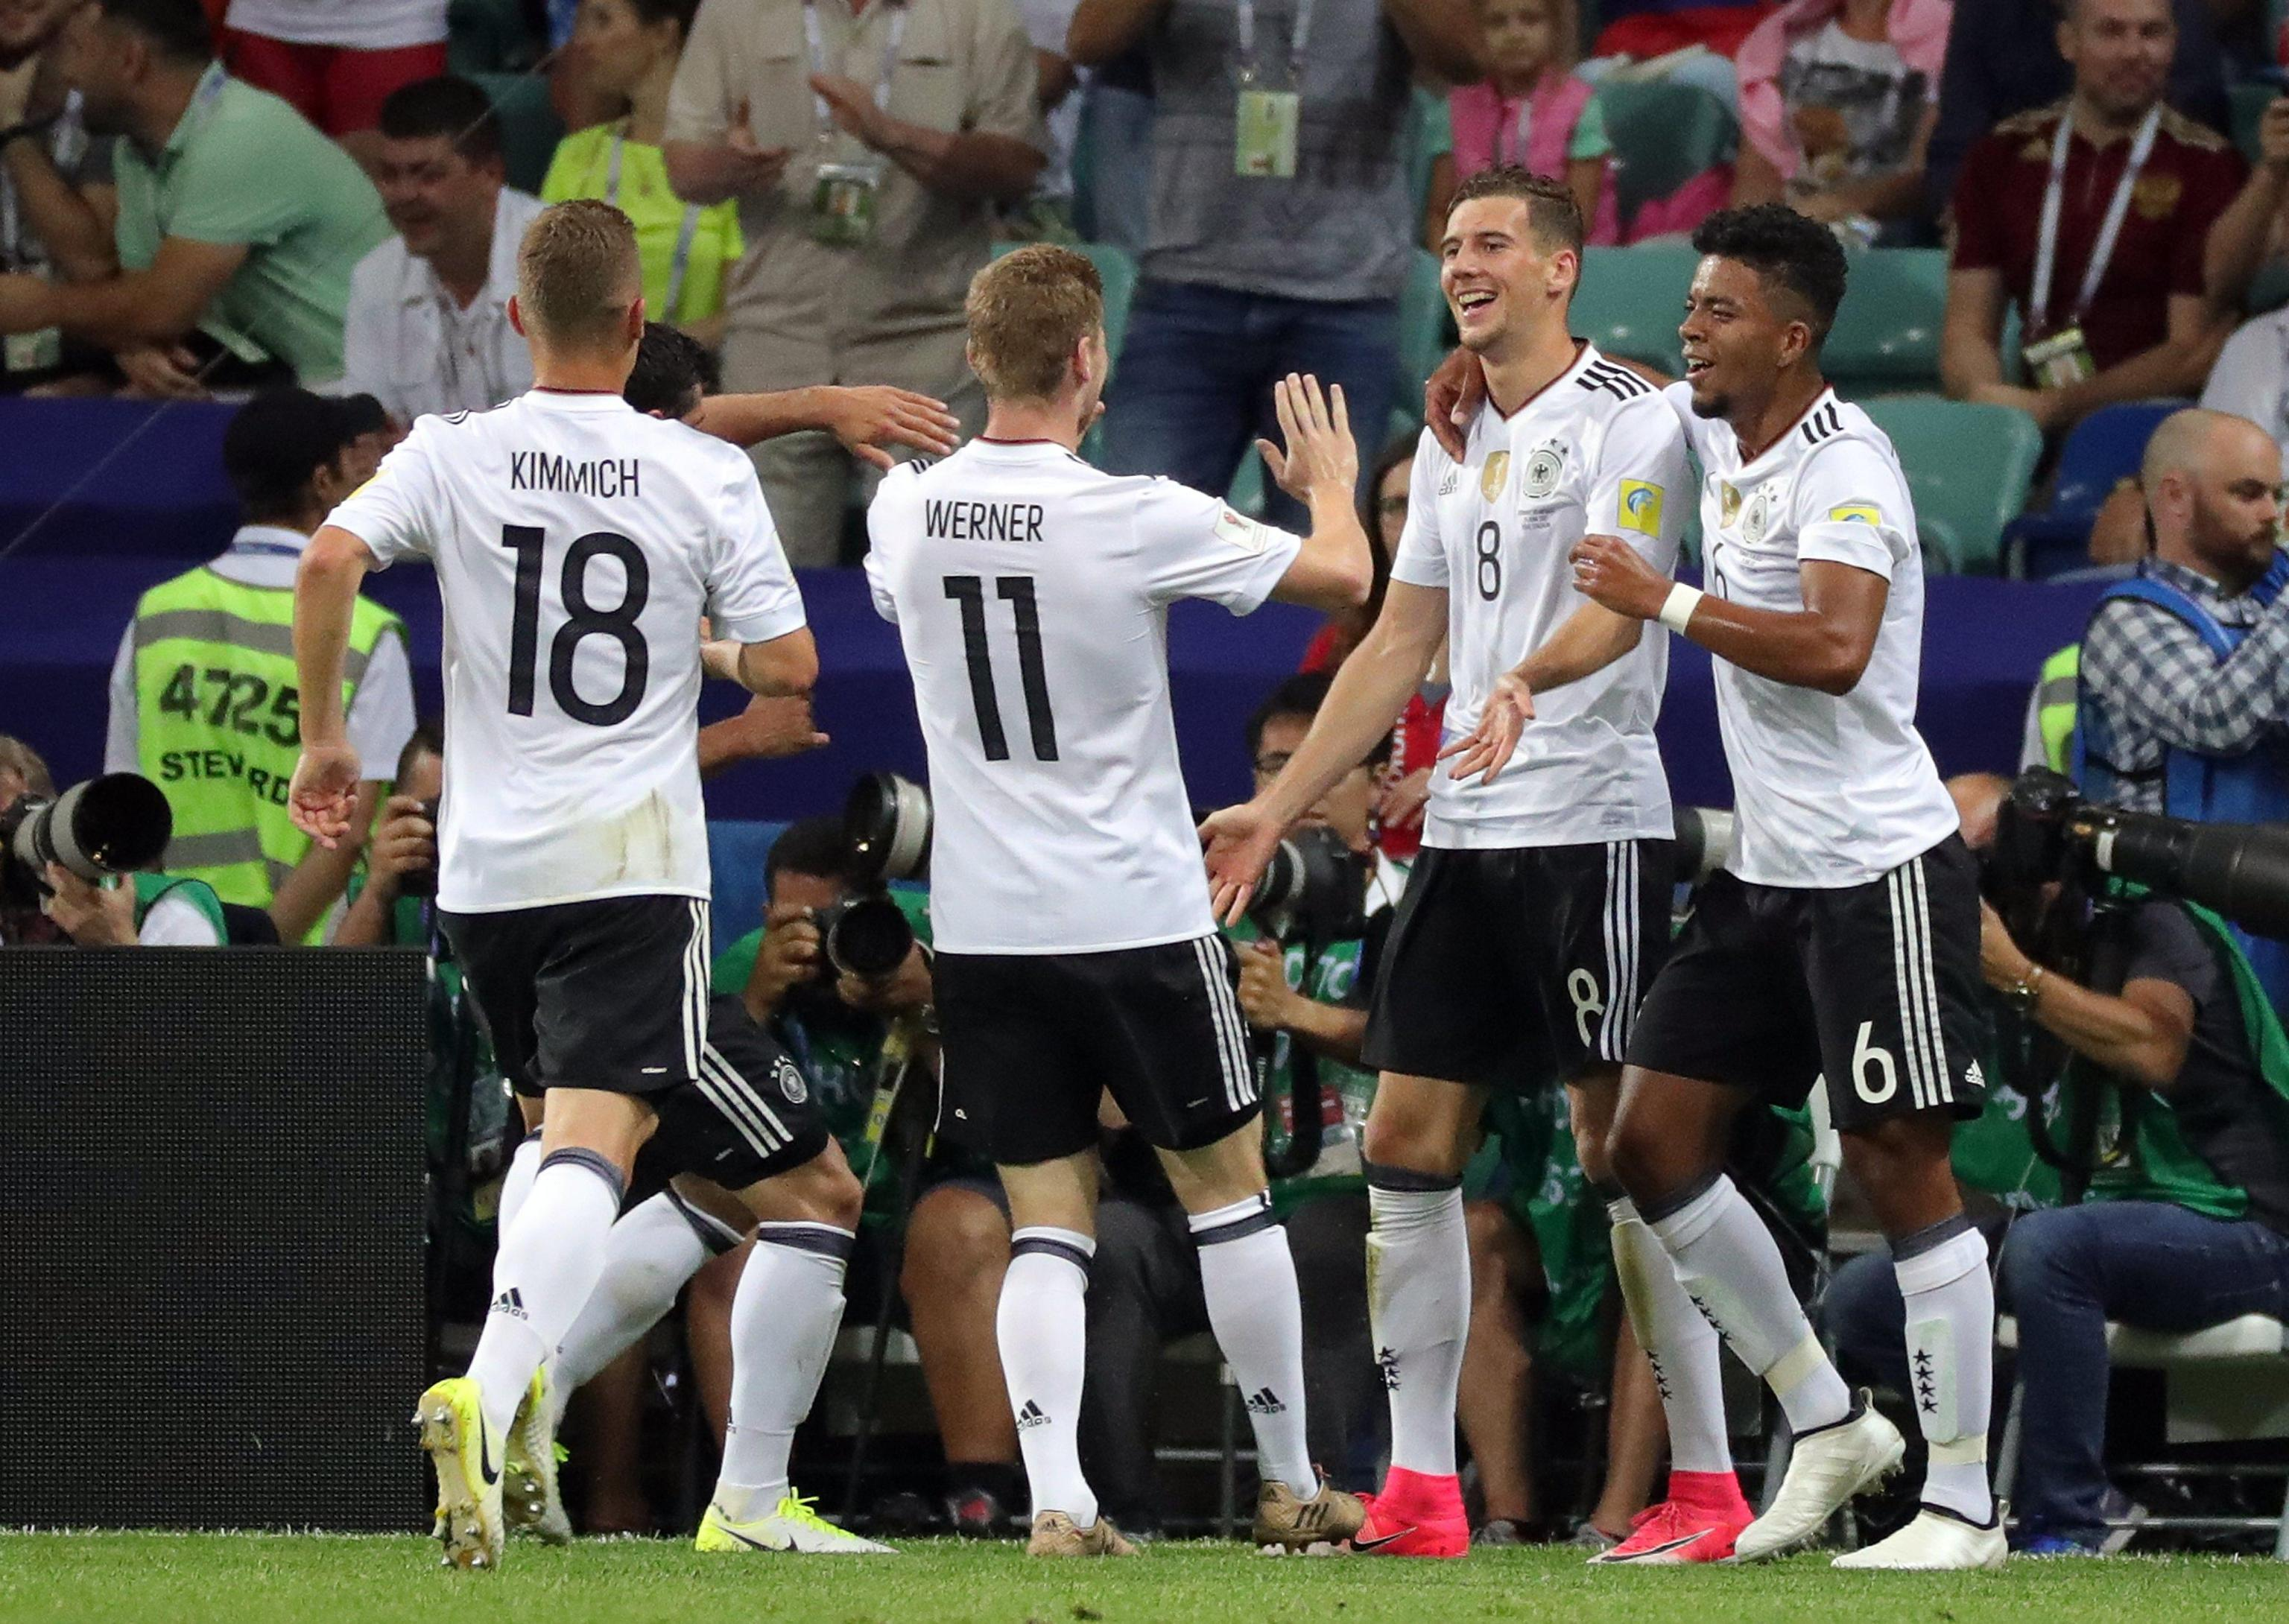 Germania-Messico 4-1 (highlights). Cile-Germania sarà la finale della Confederations Cup